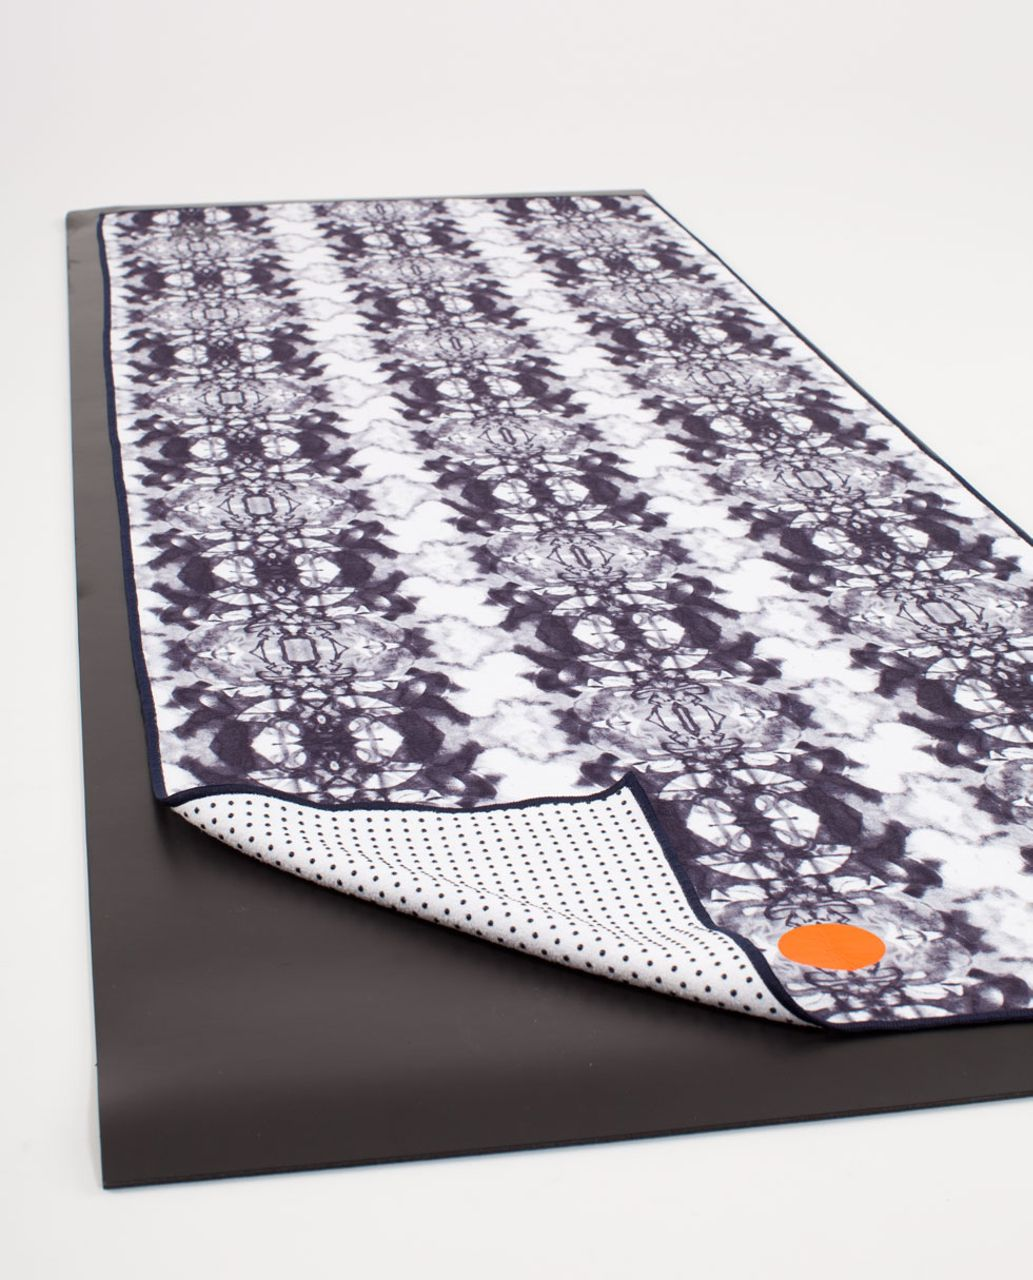 Lululemon Skidless Towel - Ink Blot White Deep Indigo